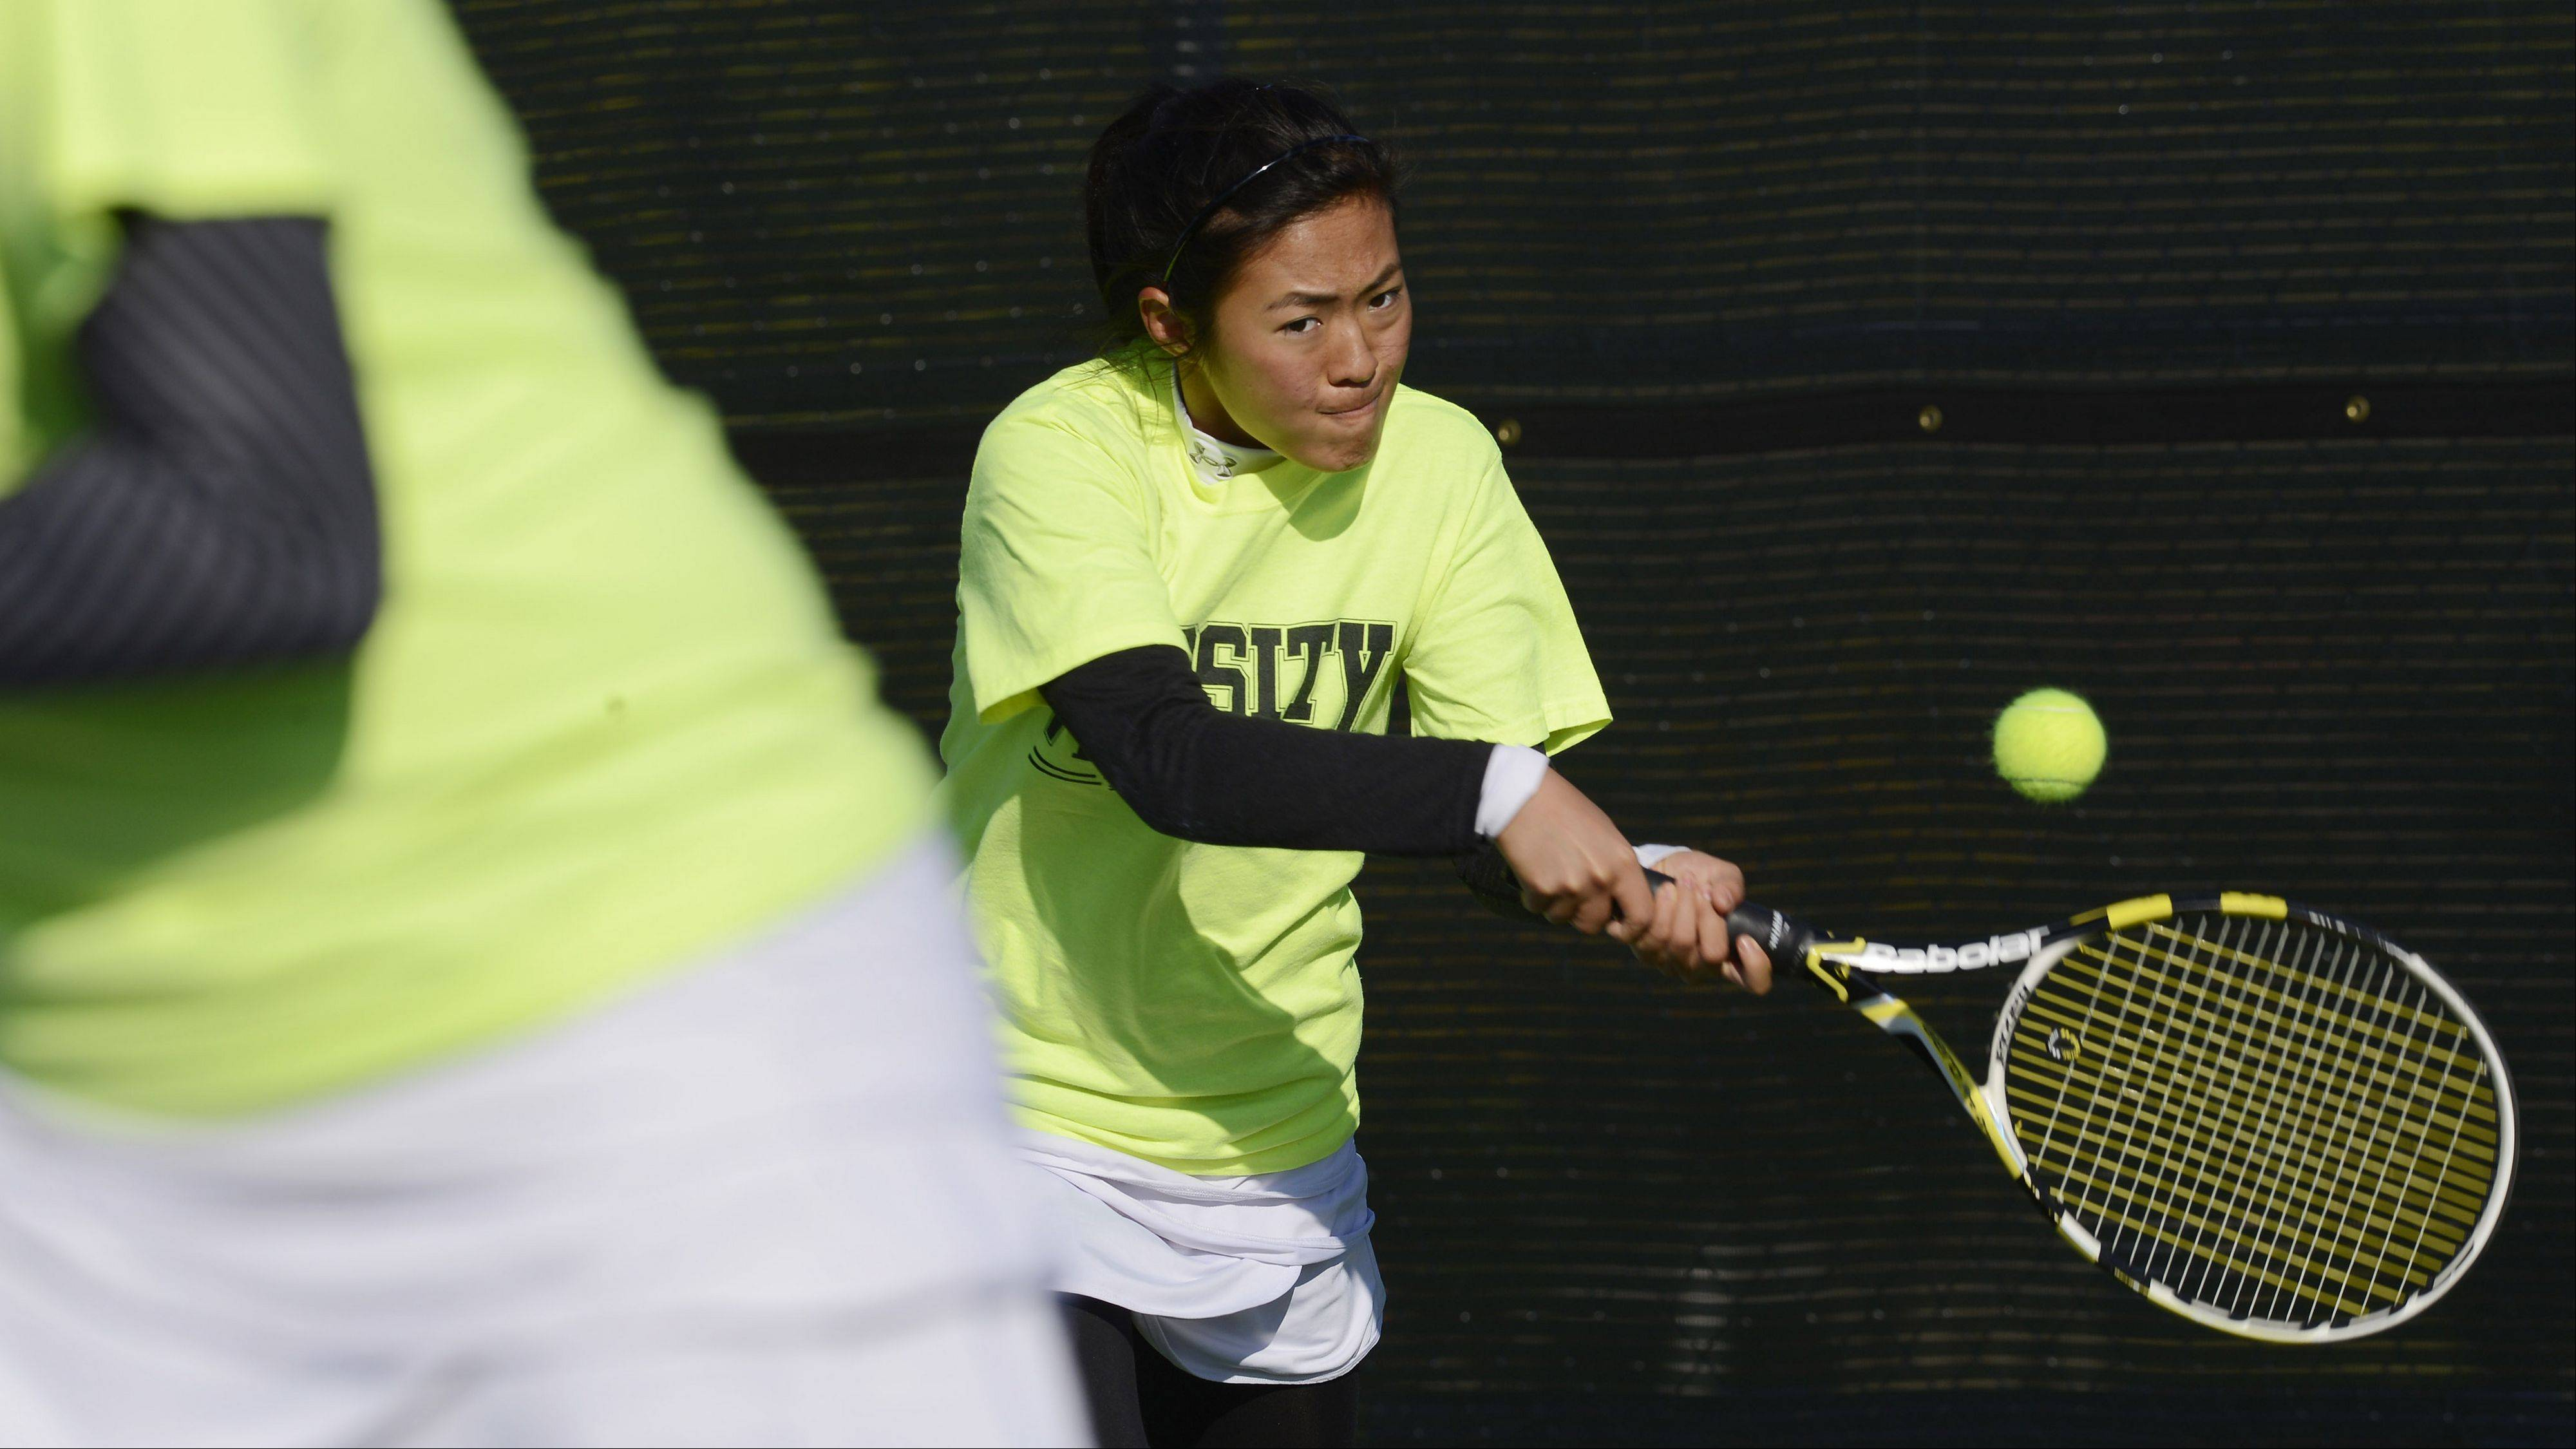 Naperville North's Julia Li returns a serve as doubles partner Jessica Hu stands ready at the net during the girls state tennis preliminaries at Prospect High School Thursday.